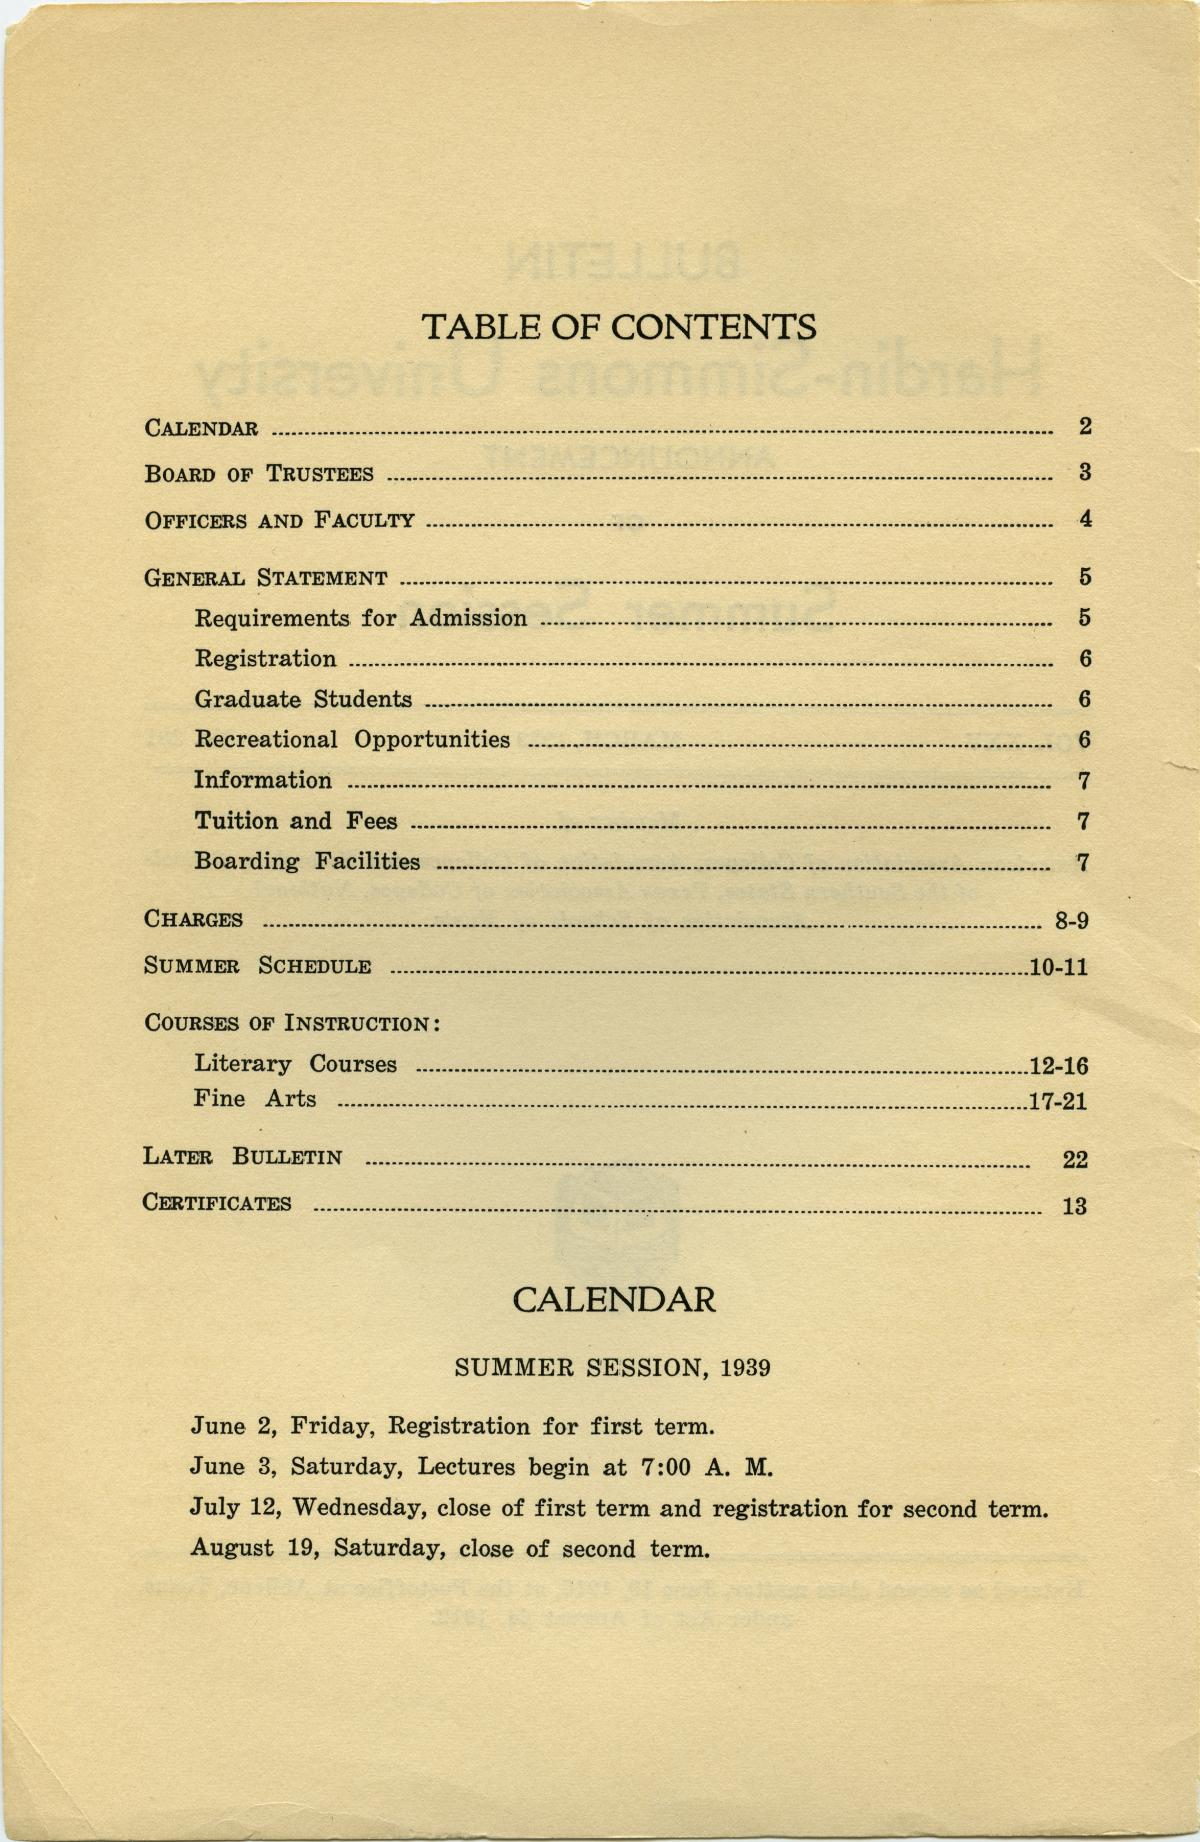 Catalogue of Hardin-Simmons University, 1939 Summer Session                                                                                                      Front Inside